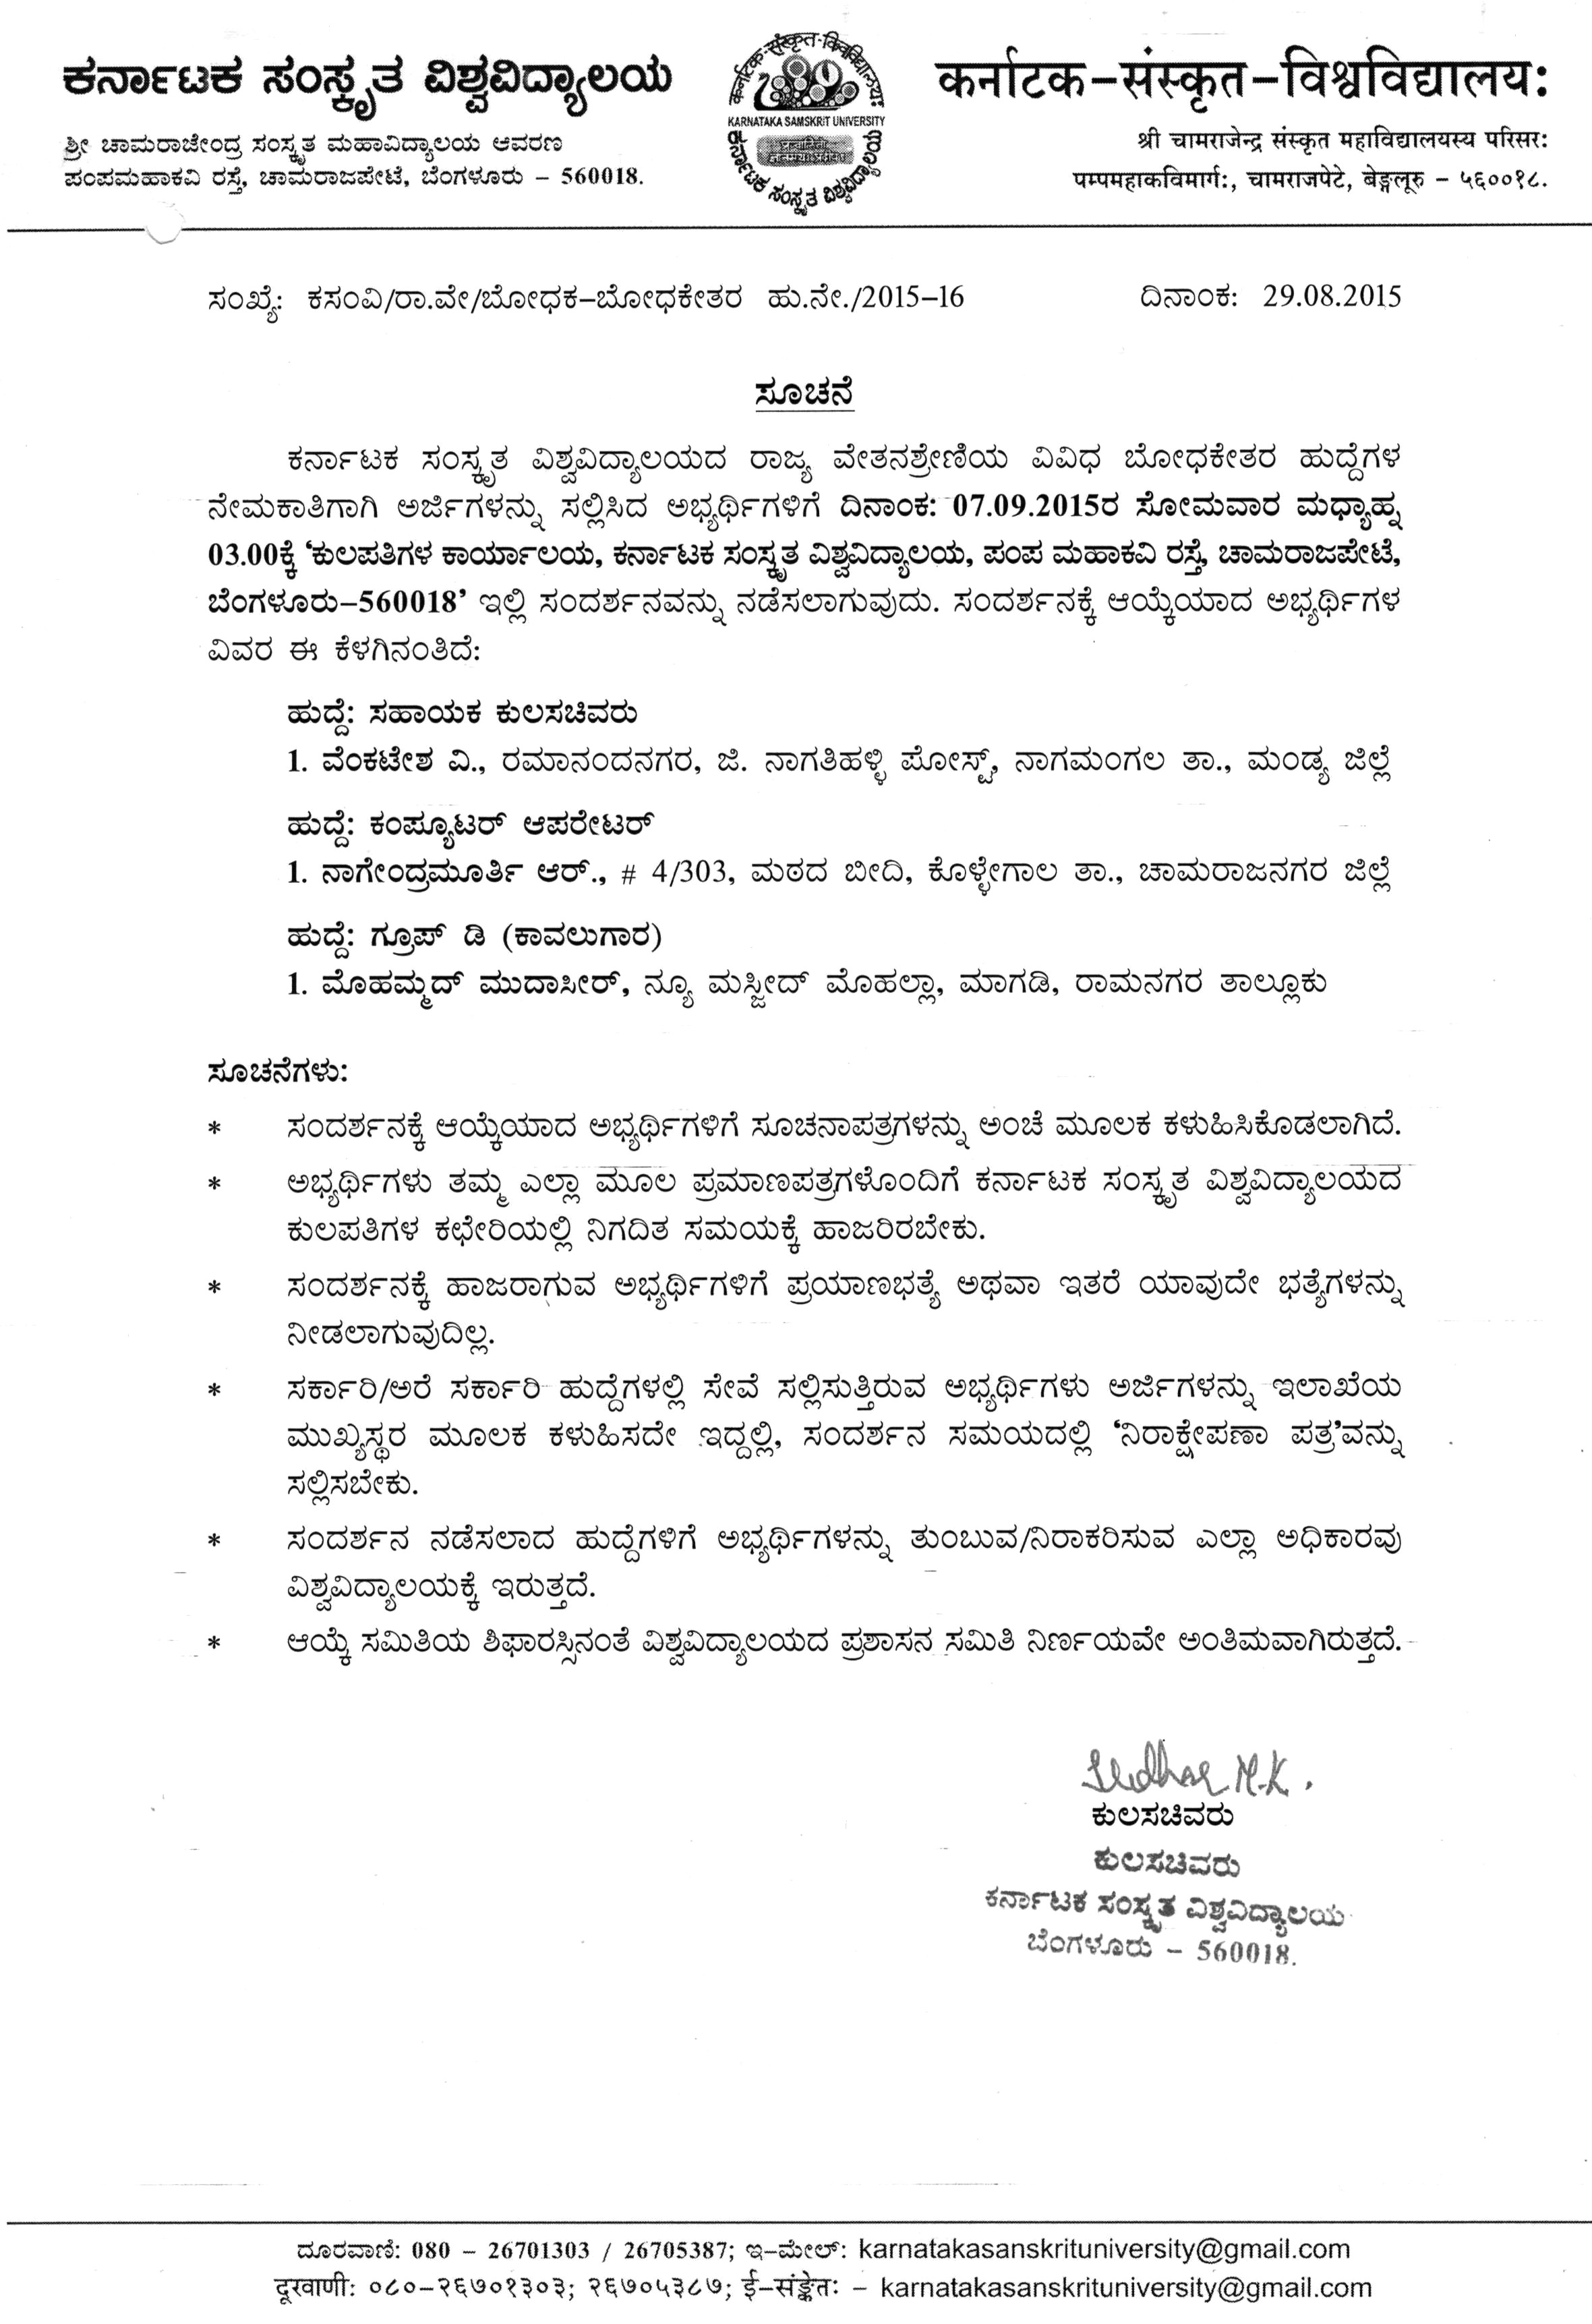 jobs karnataka samskrit university notification for walk in interviews for the post of system analyst and data entry operator on 3rd wednesday 3 00 pm